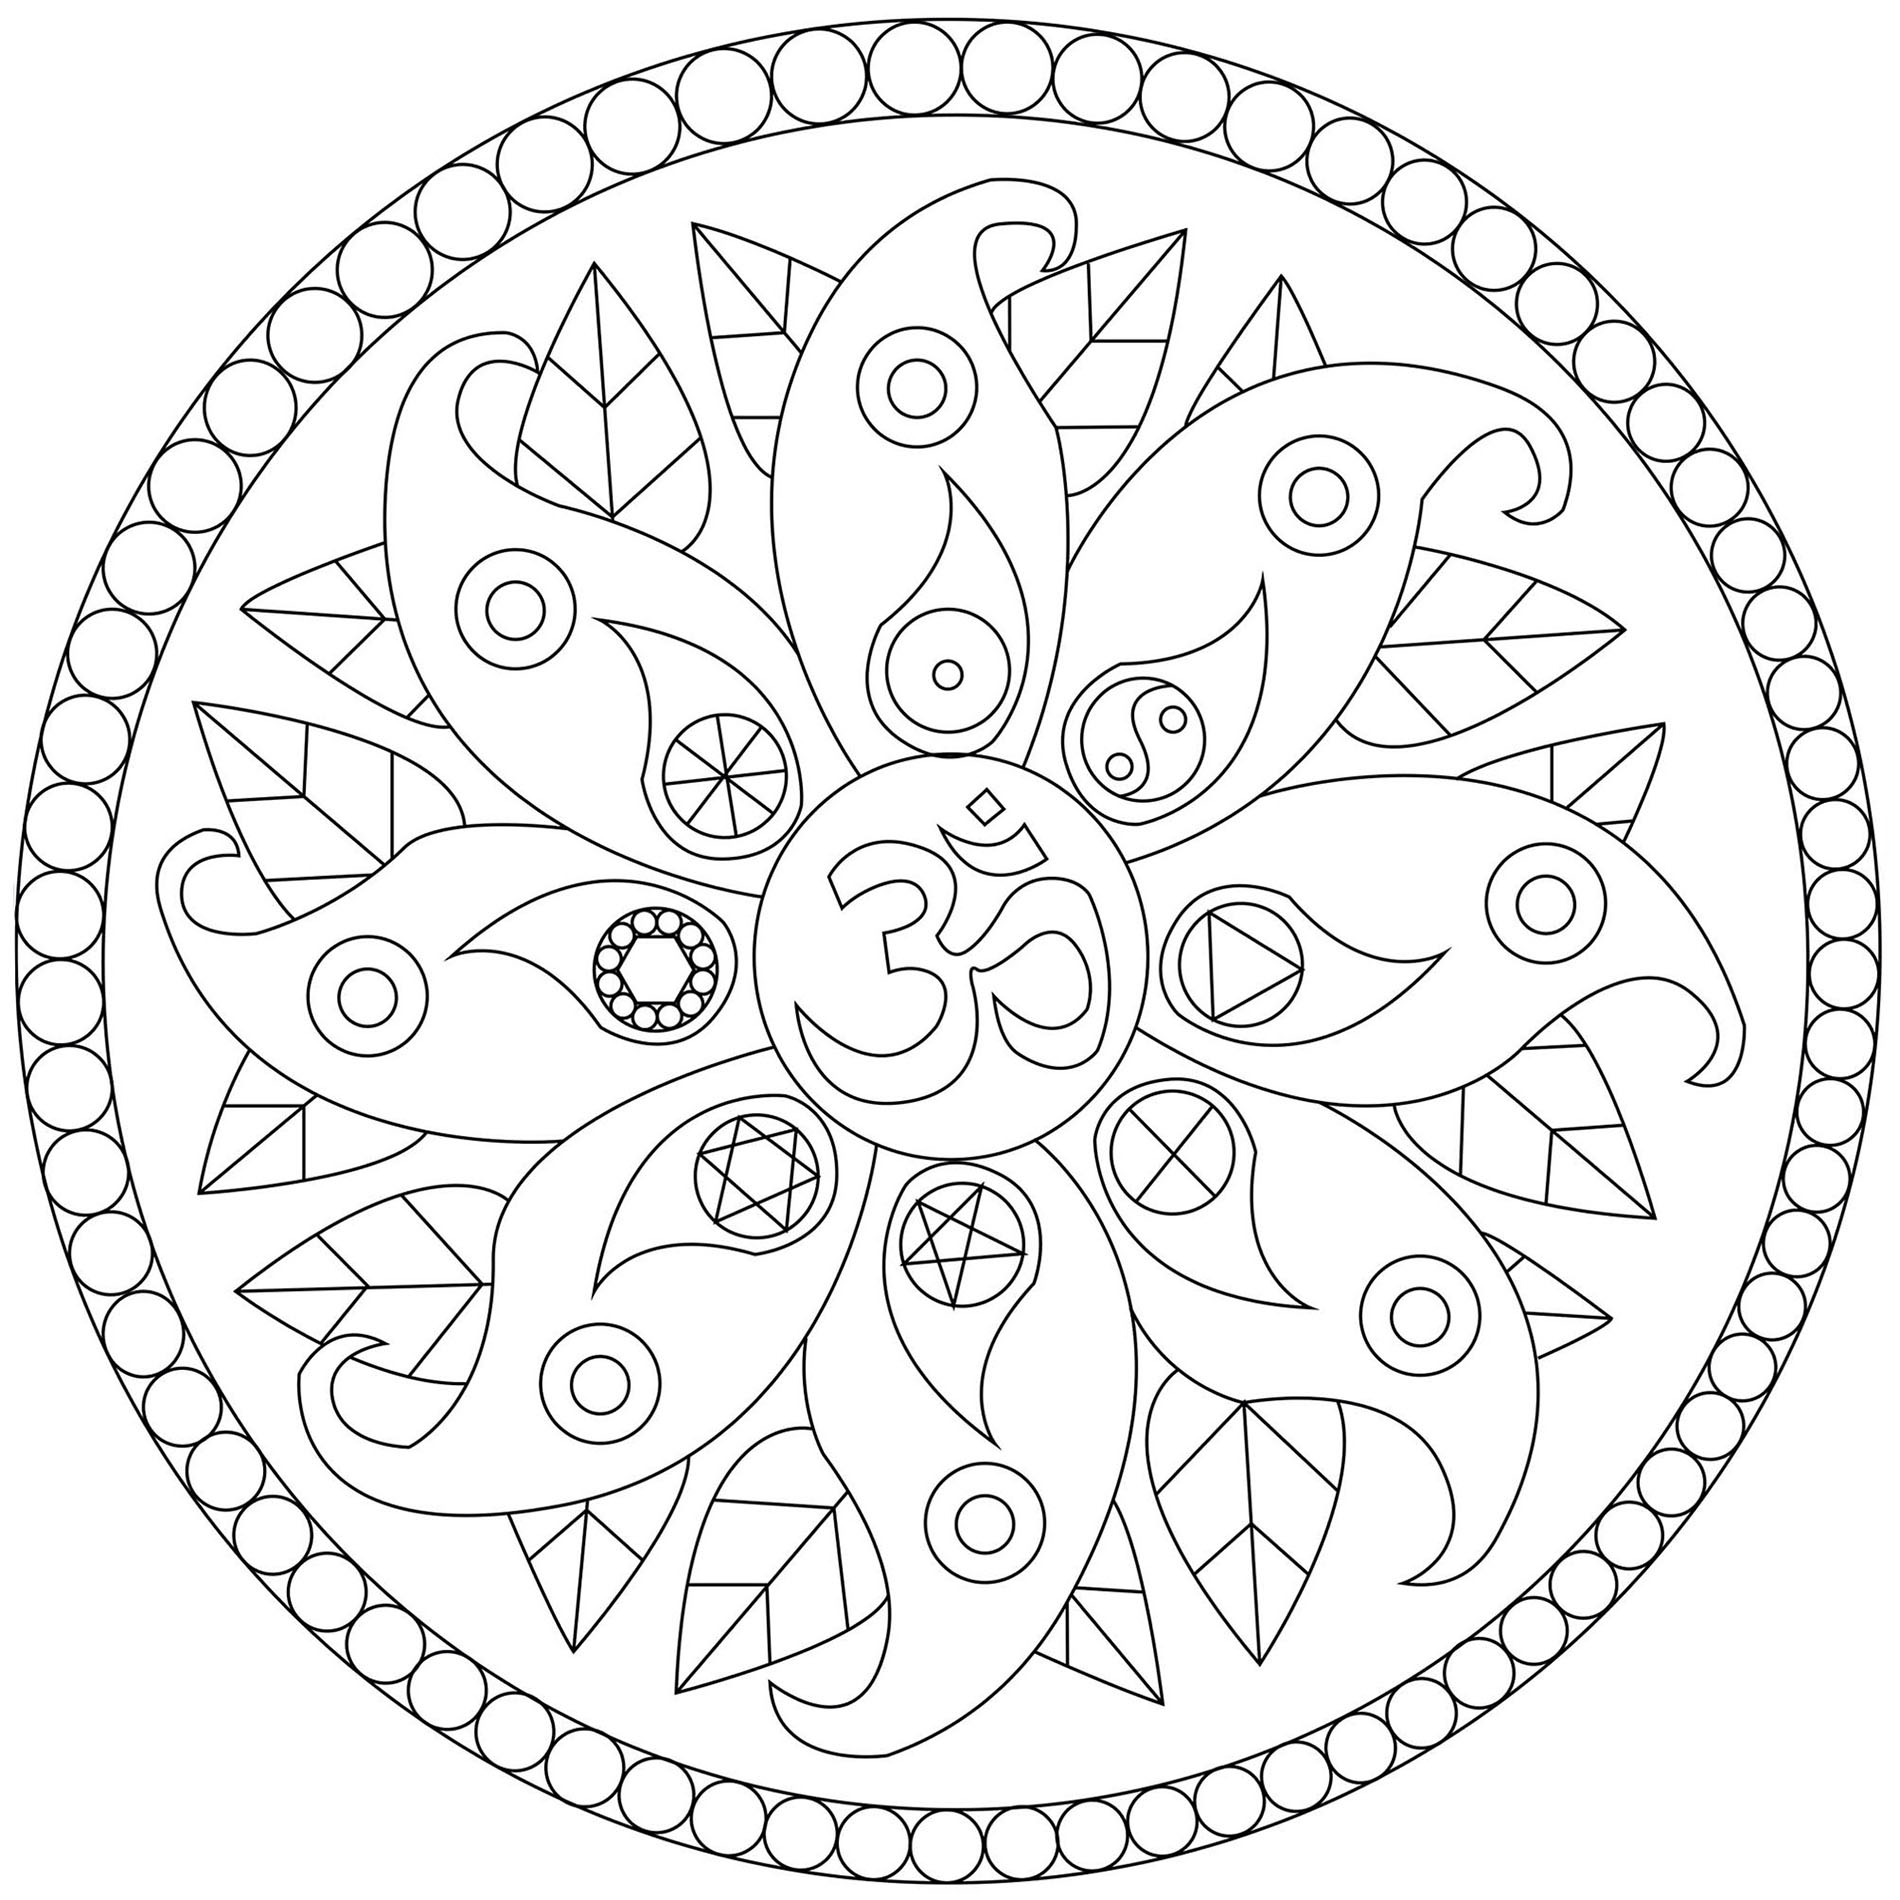 A very cute Mandala coloring page with petals, leaves an various symbols